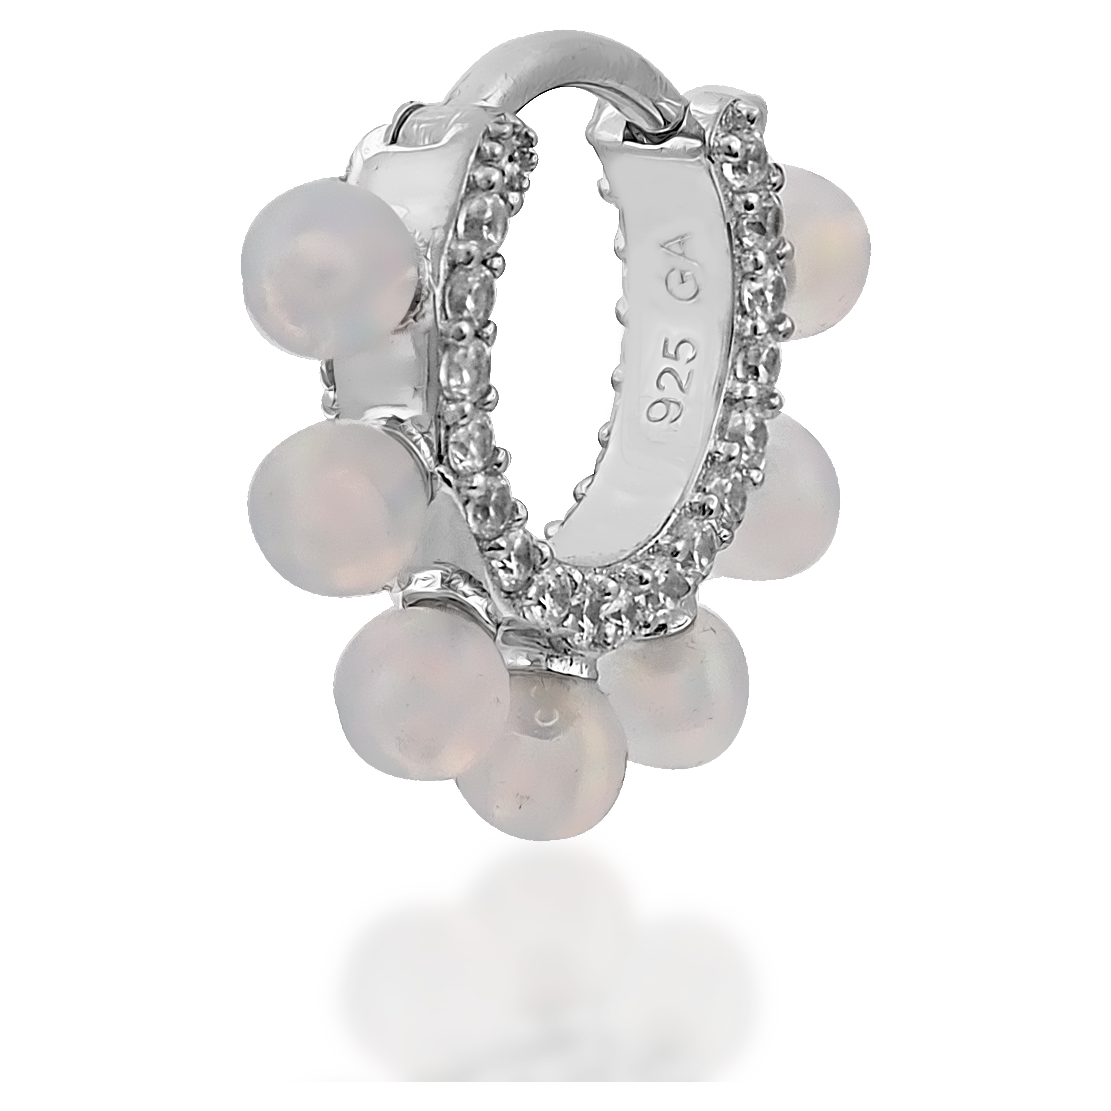 Coronet opal sterling silver huggie - GALLERIA ARMADORO